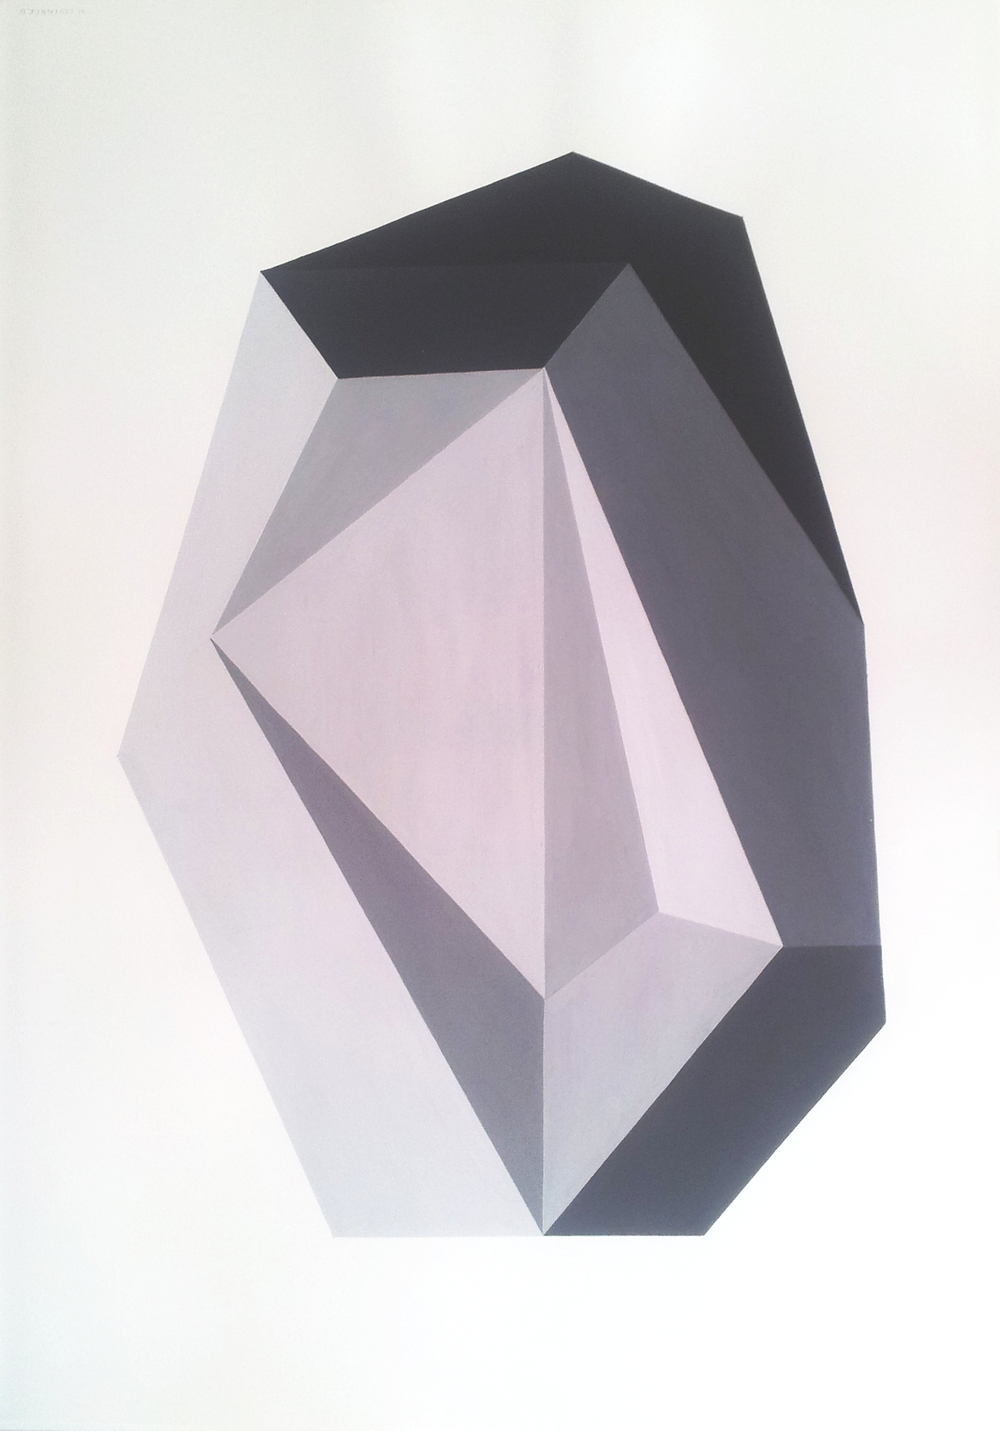 Nicole Levenberg  'Untitled (Dark Crystal)'  Oil on paper  100 x 70.5 cm